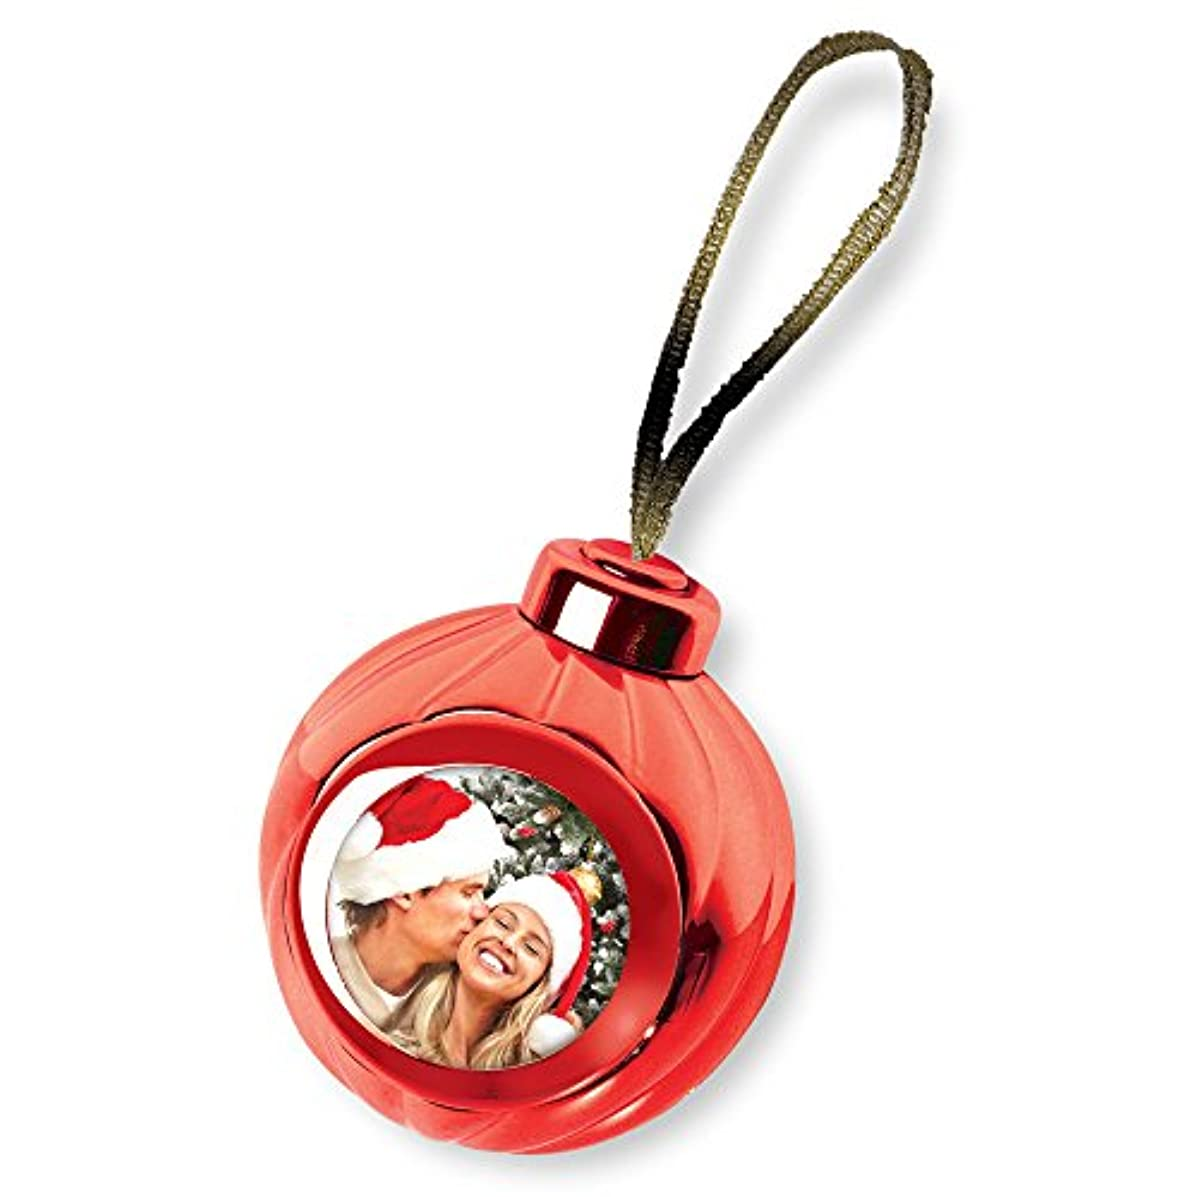 Launch Innovative Products Red Voice Recording Talking Christmas Ornament - Add Your Own Photo and Press a Button to Record and Play Back